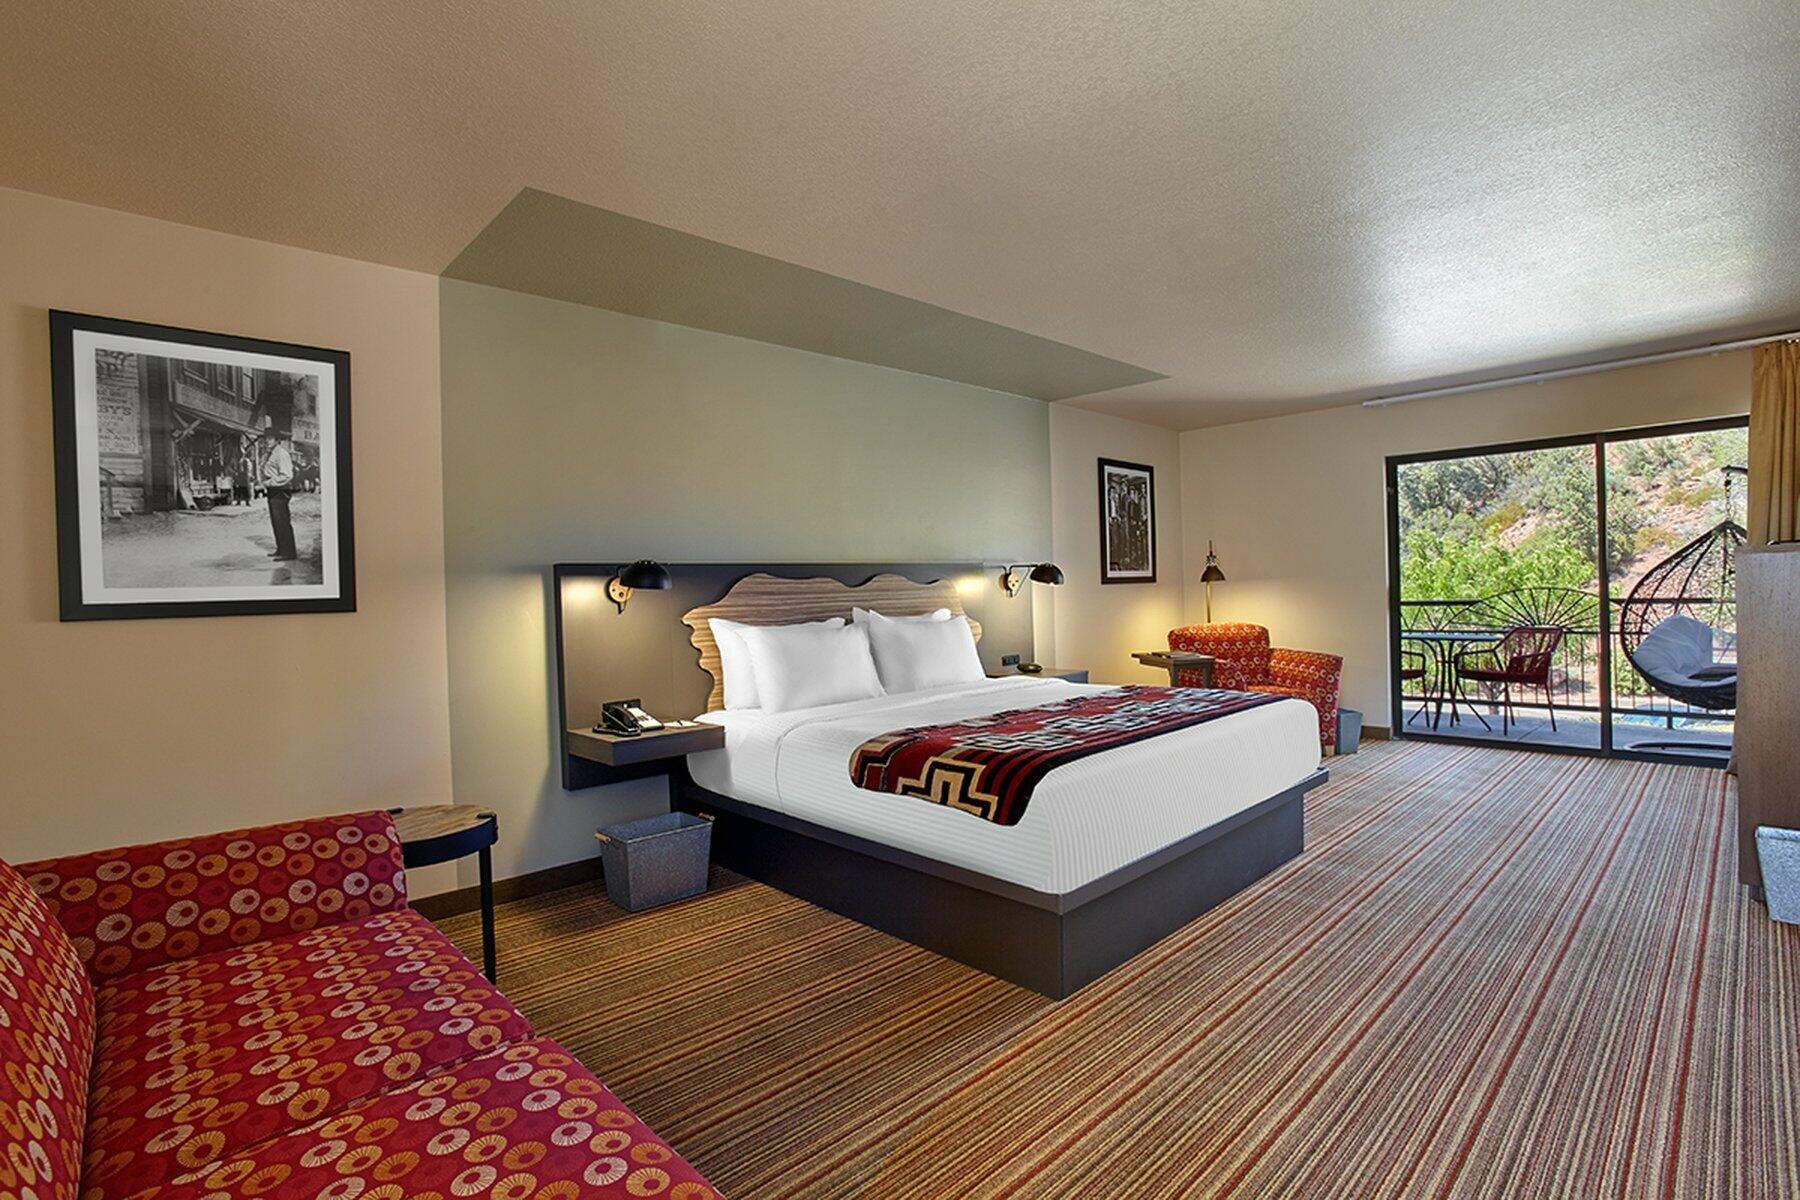 Hotel room with king bed and trailhead view.